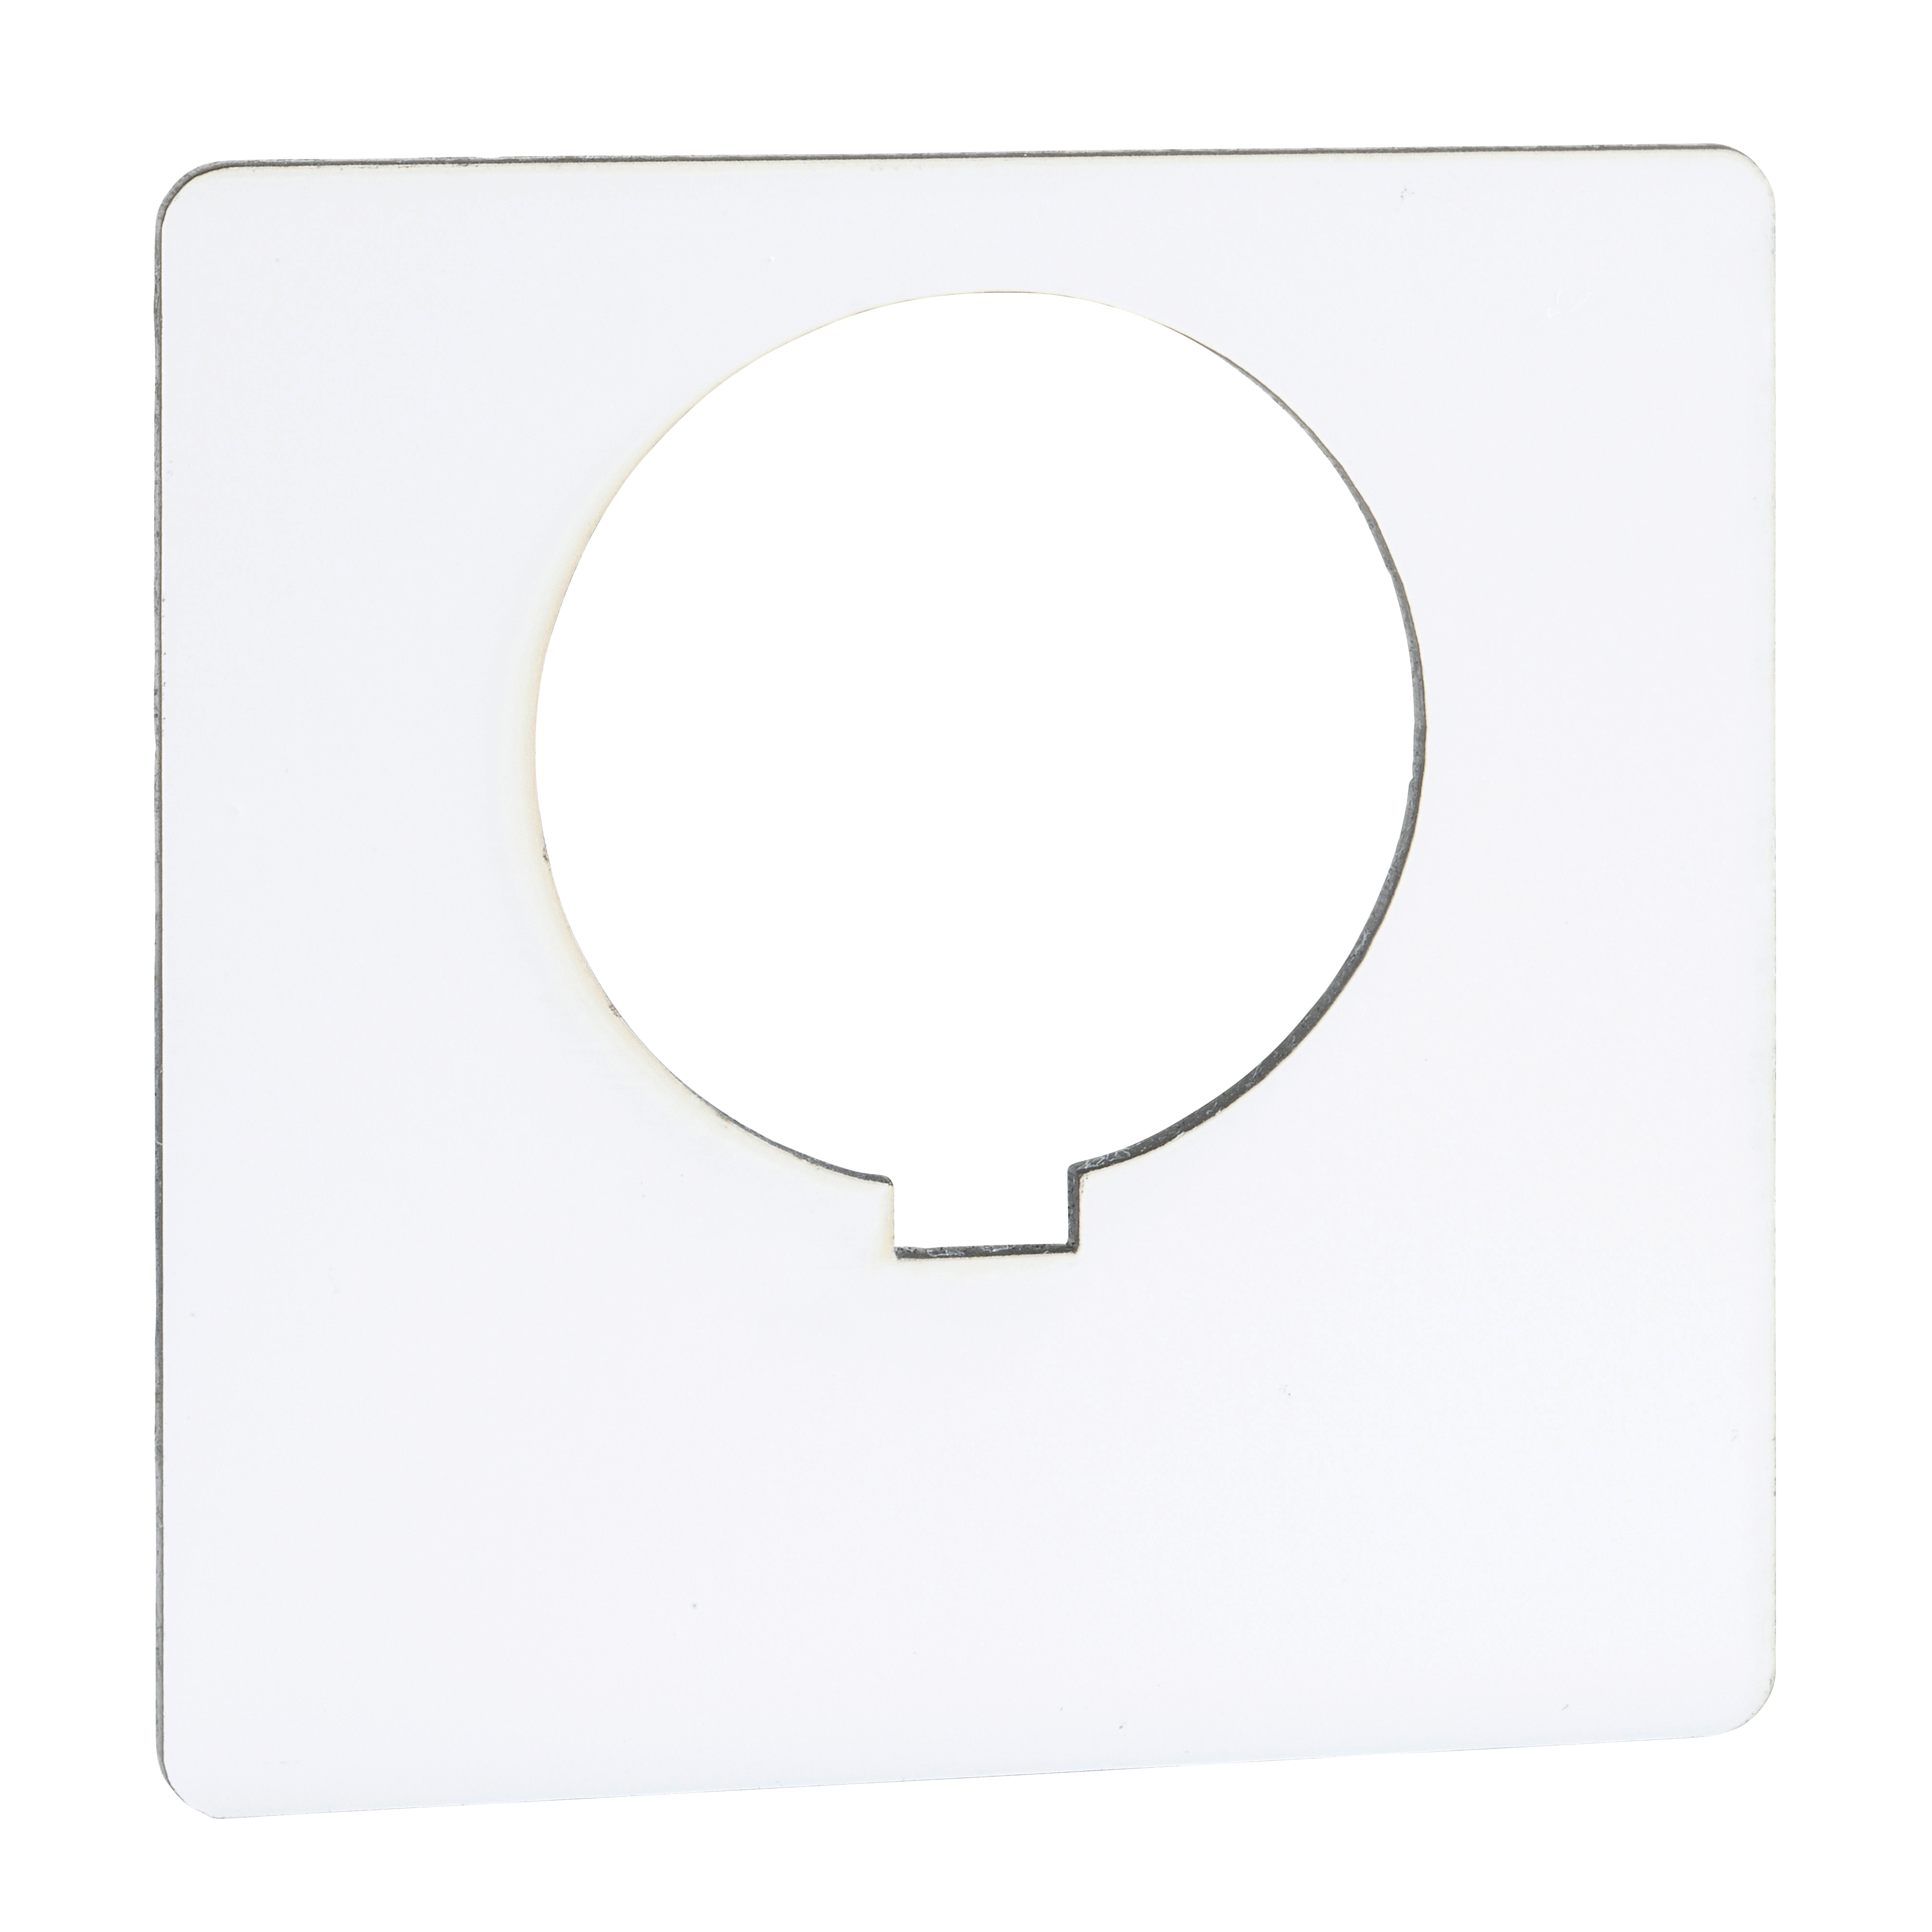 SQUARE D 30MM LEGEND PLATE - BLANK (WHITE)